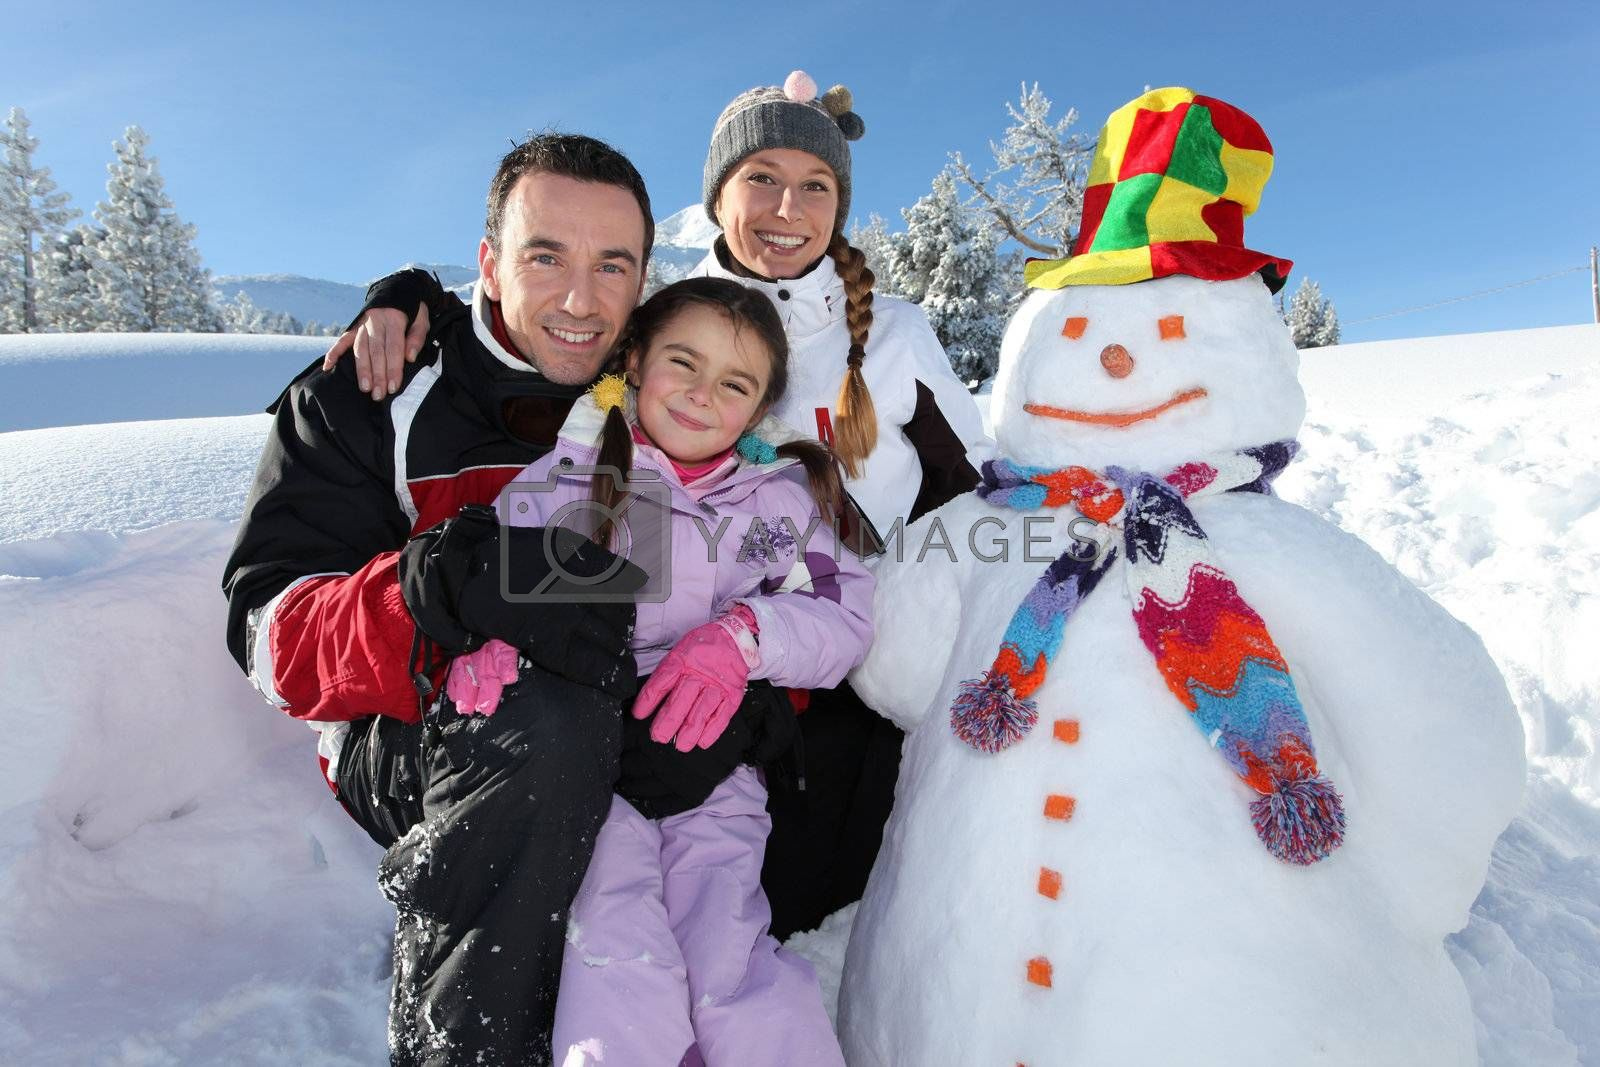 Family with a snowman by phovoir